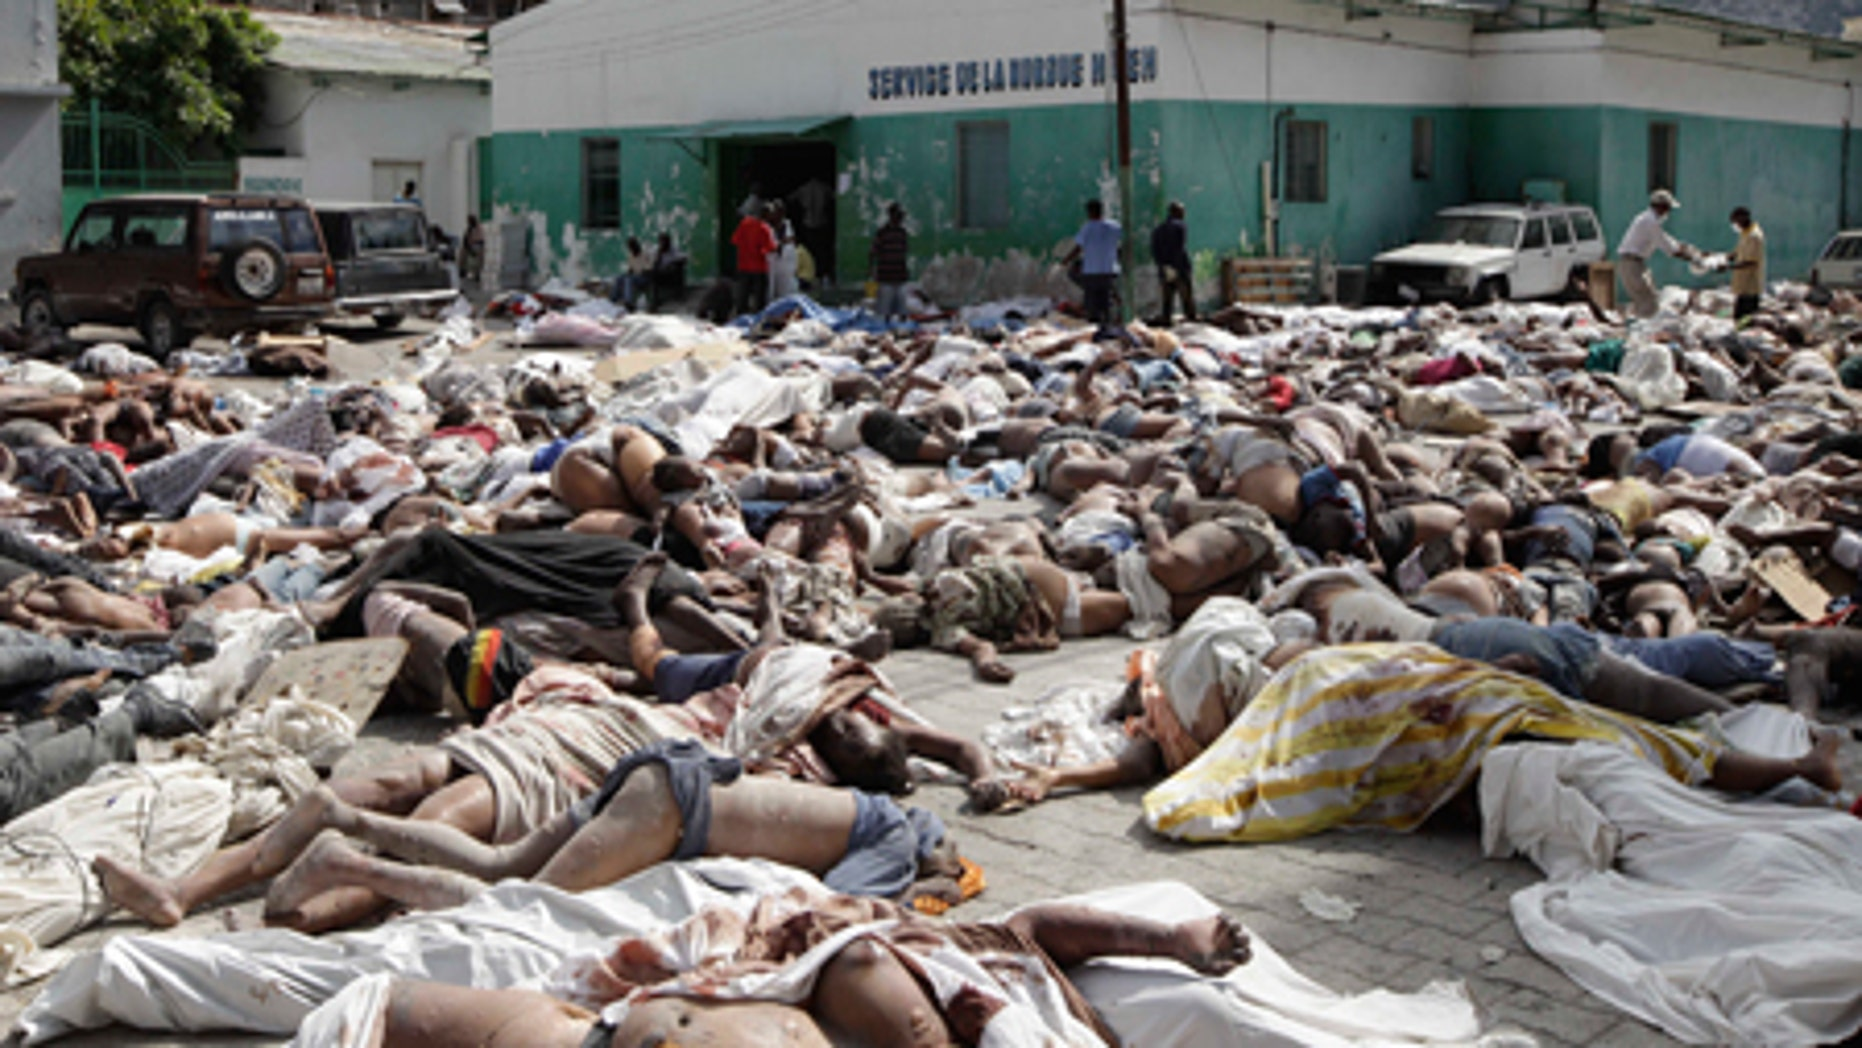 Hundreds of bodies of earthquake victims lay outside the morgue in Port-au-Prince, Thursday, Jan. 14, 2010.